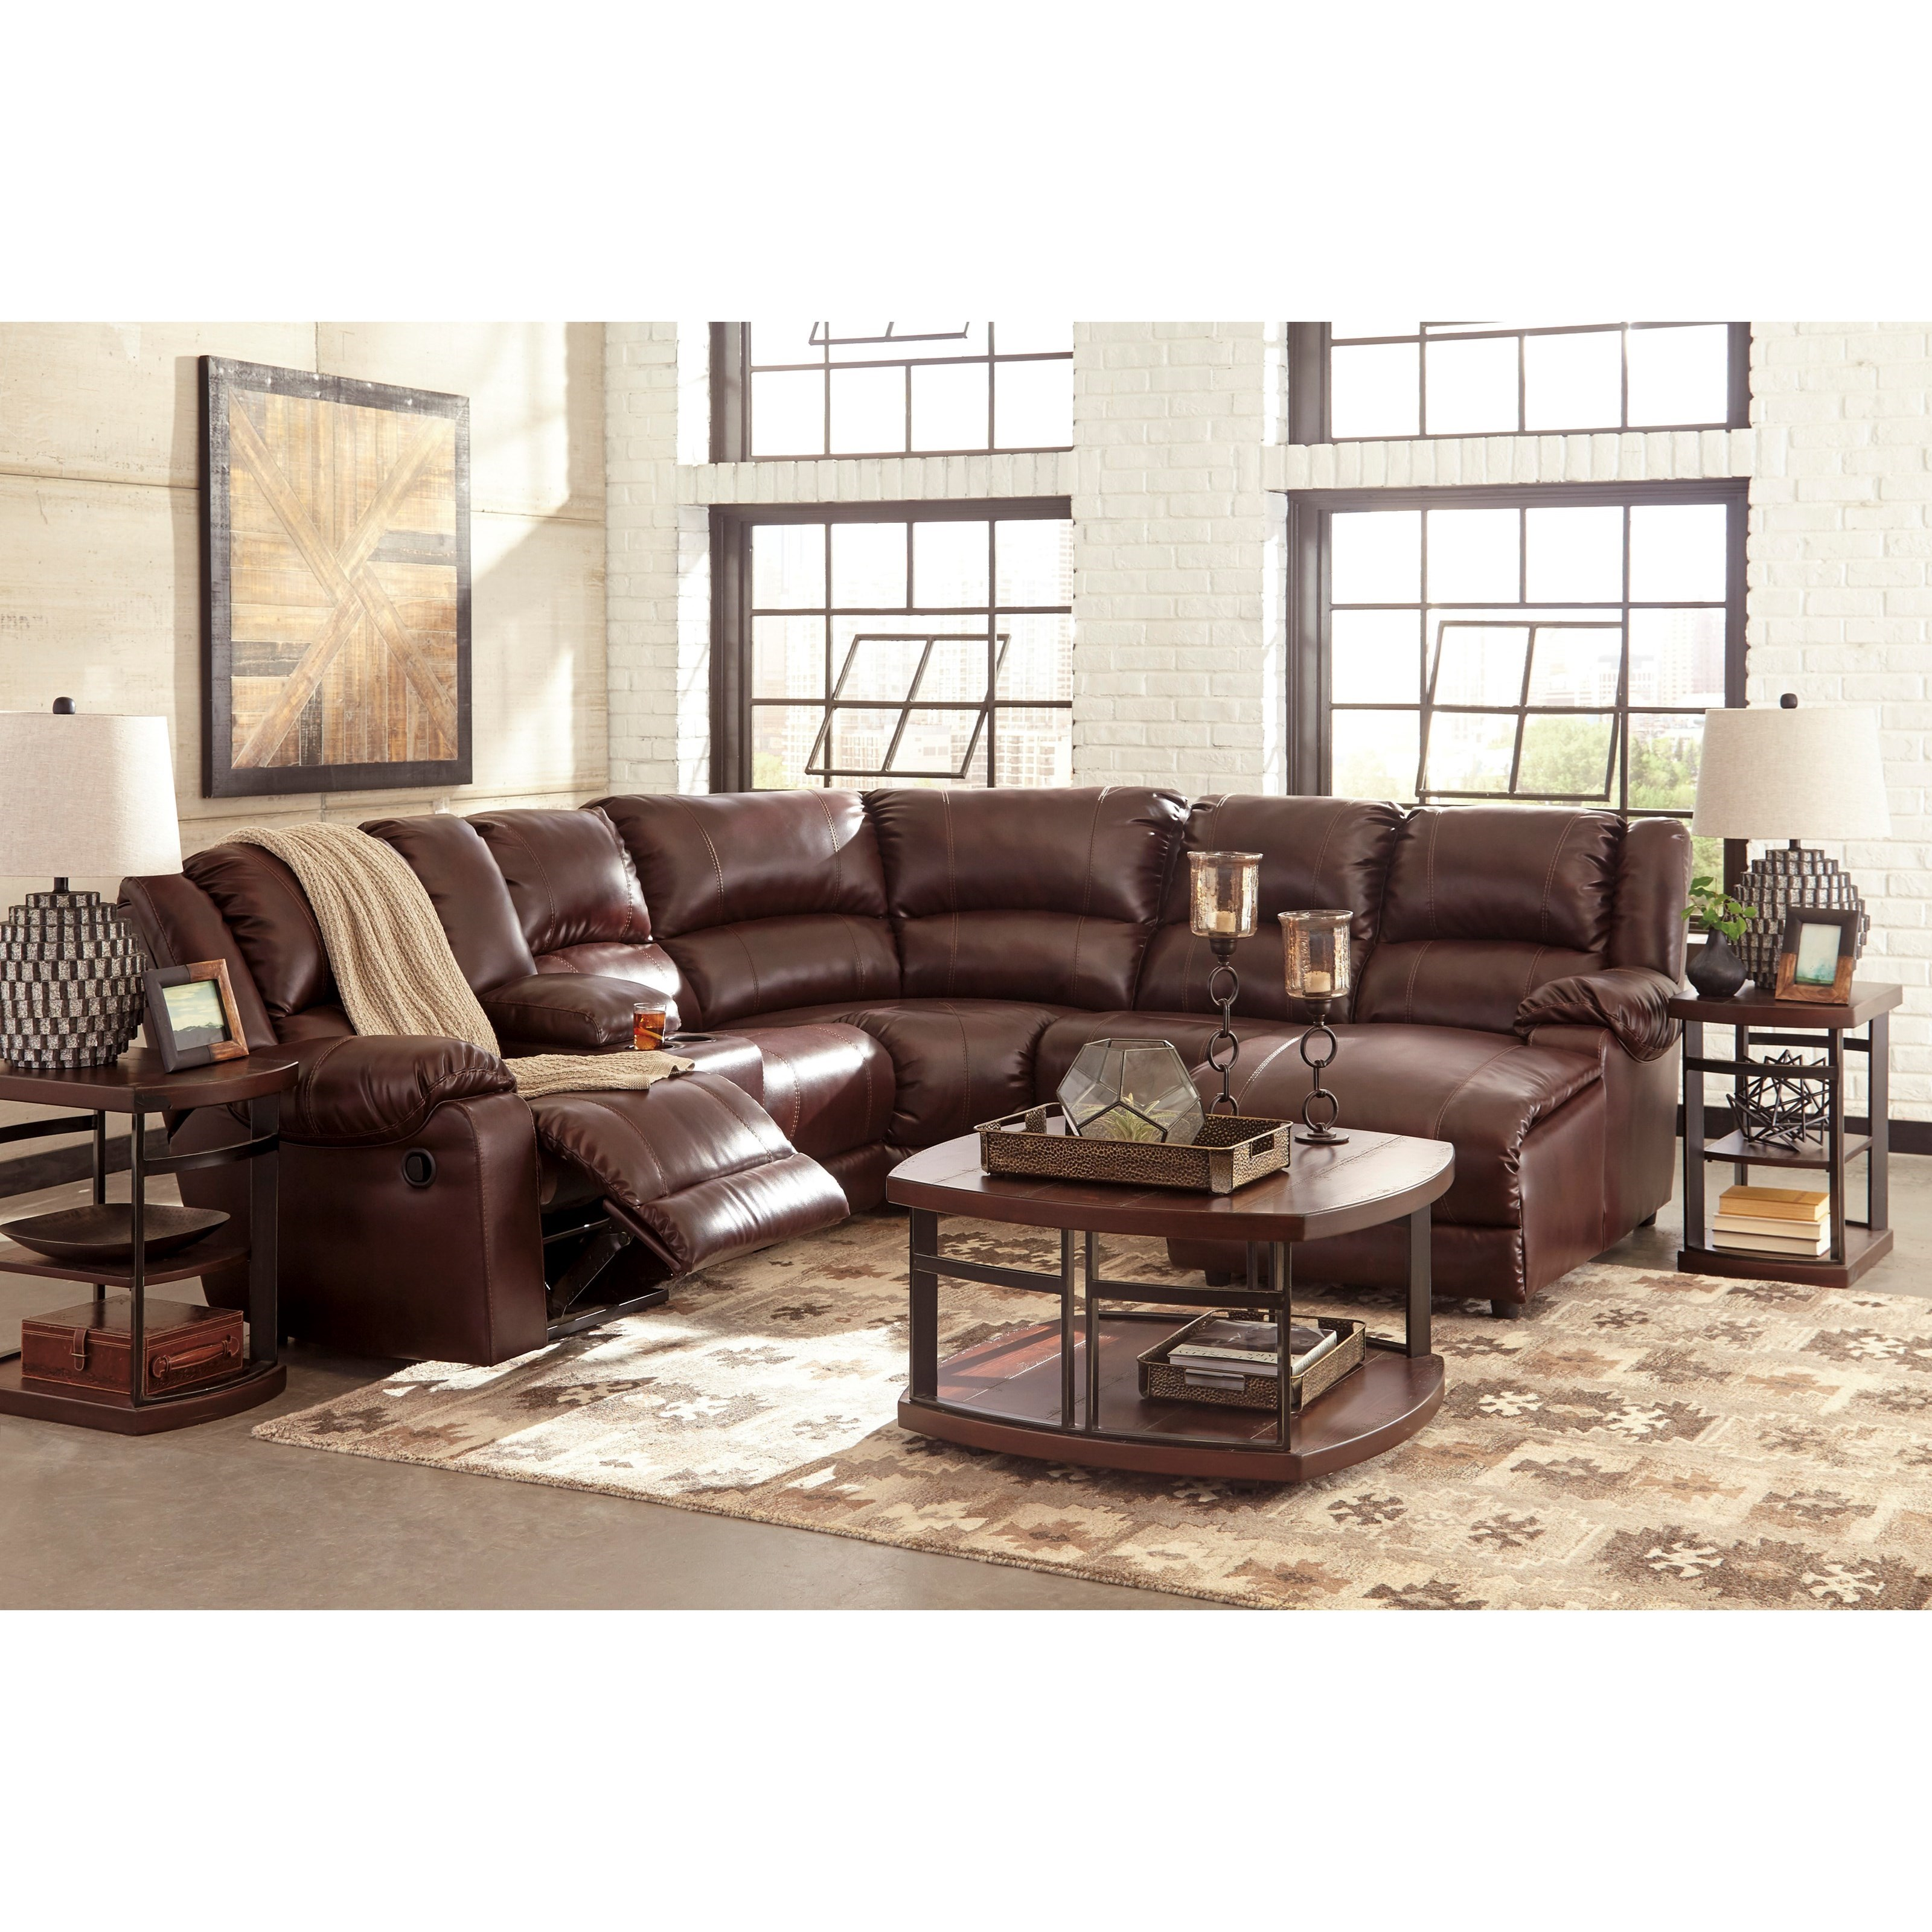 signature design by ashley macgrath durablend reclining sectional with chaise zak 39 s fine